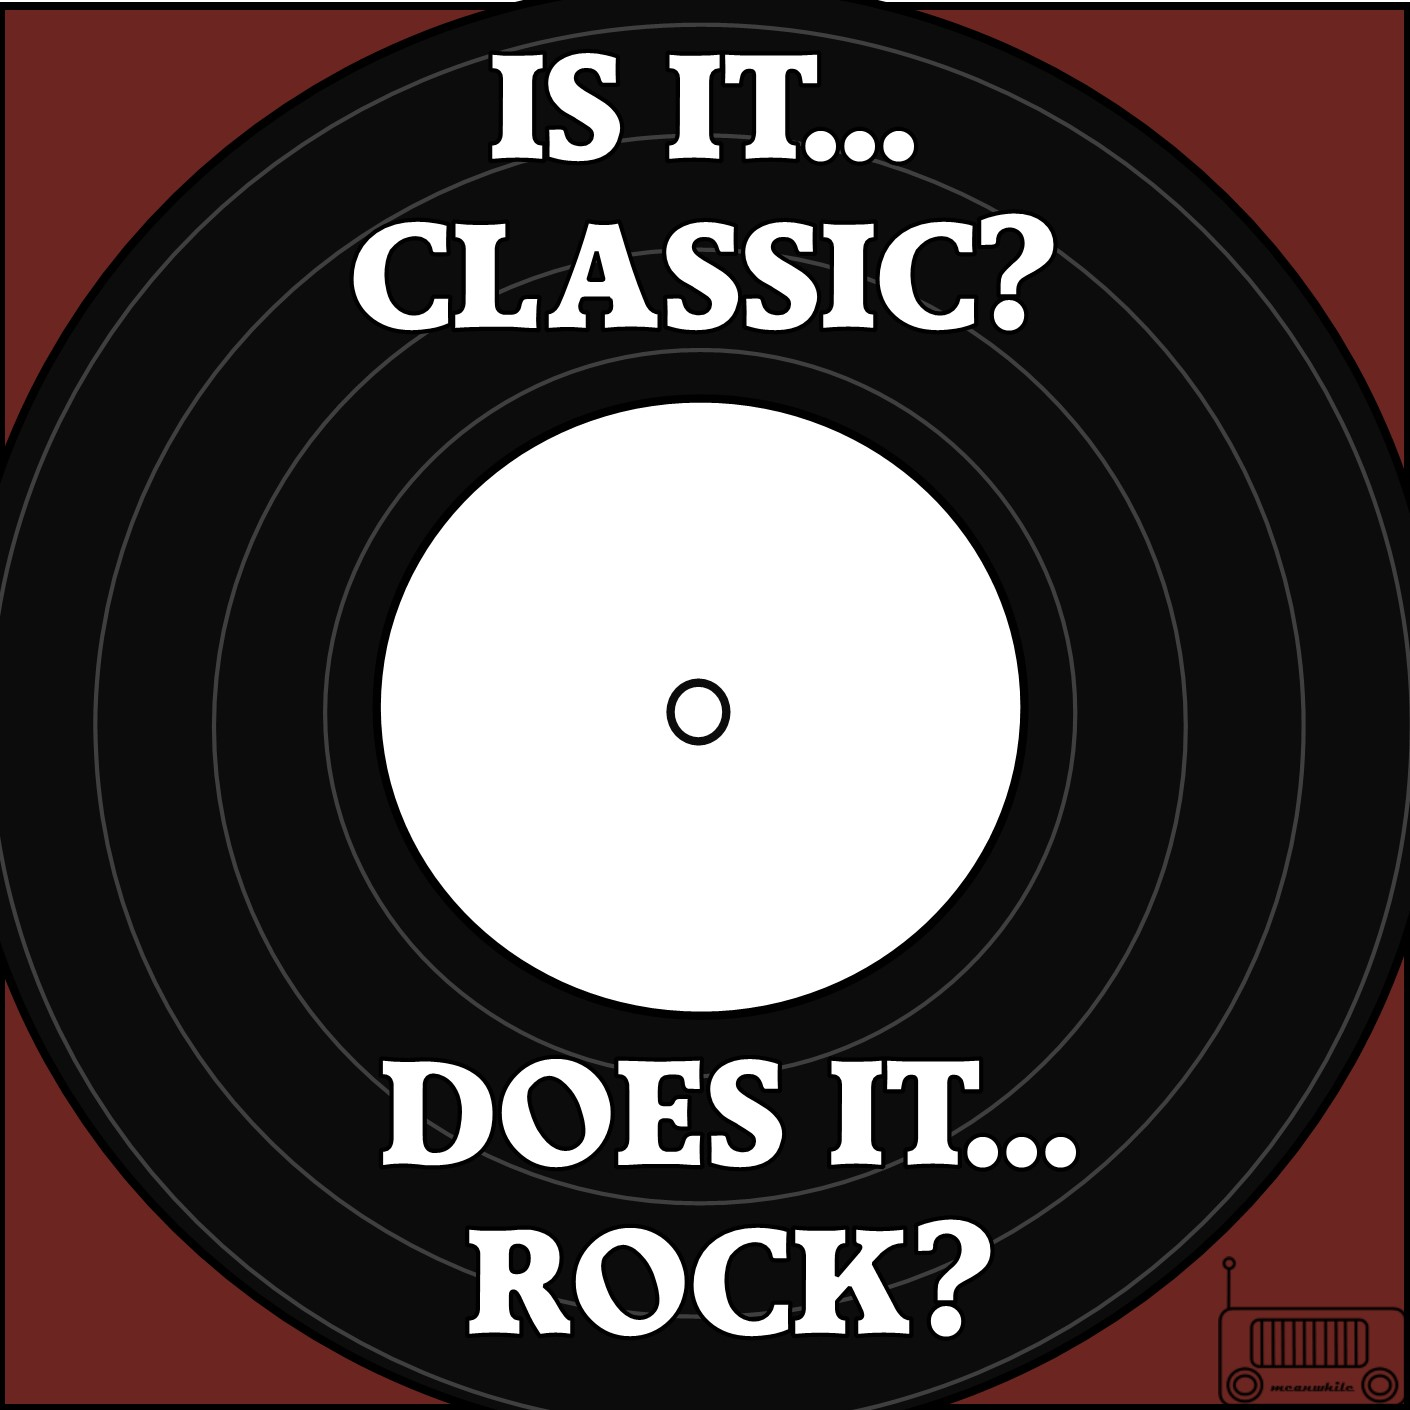 Is It Classic? Does It Rock? show image